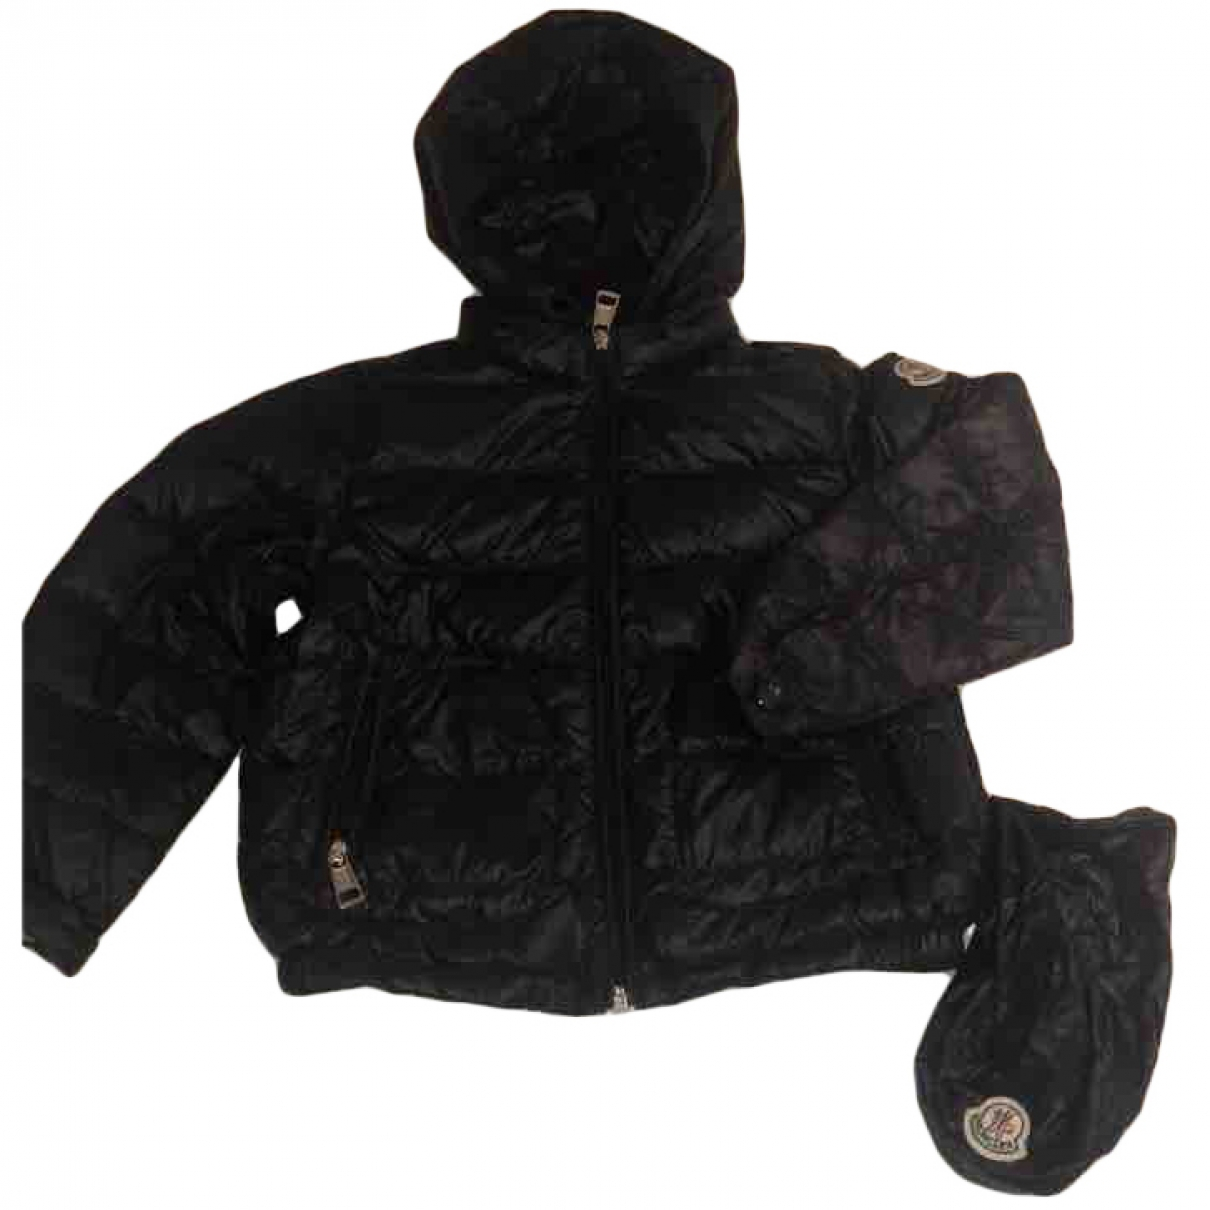 Moncler \N Navy jacket & coat for Kids 2 years - up to 86cm FR